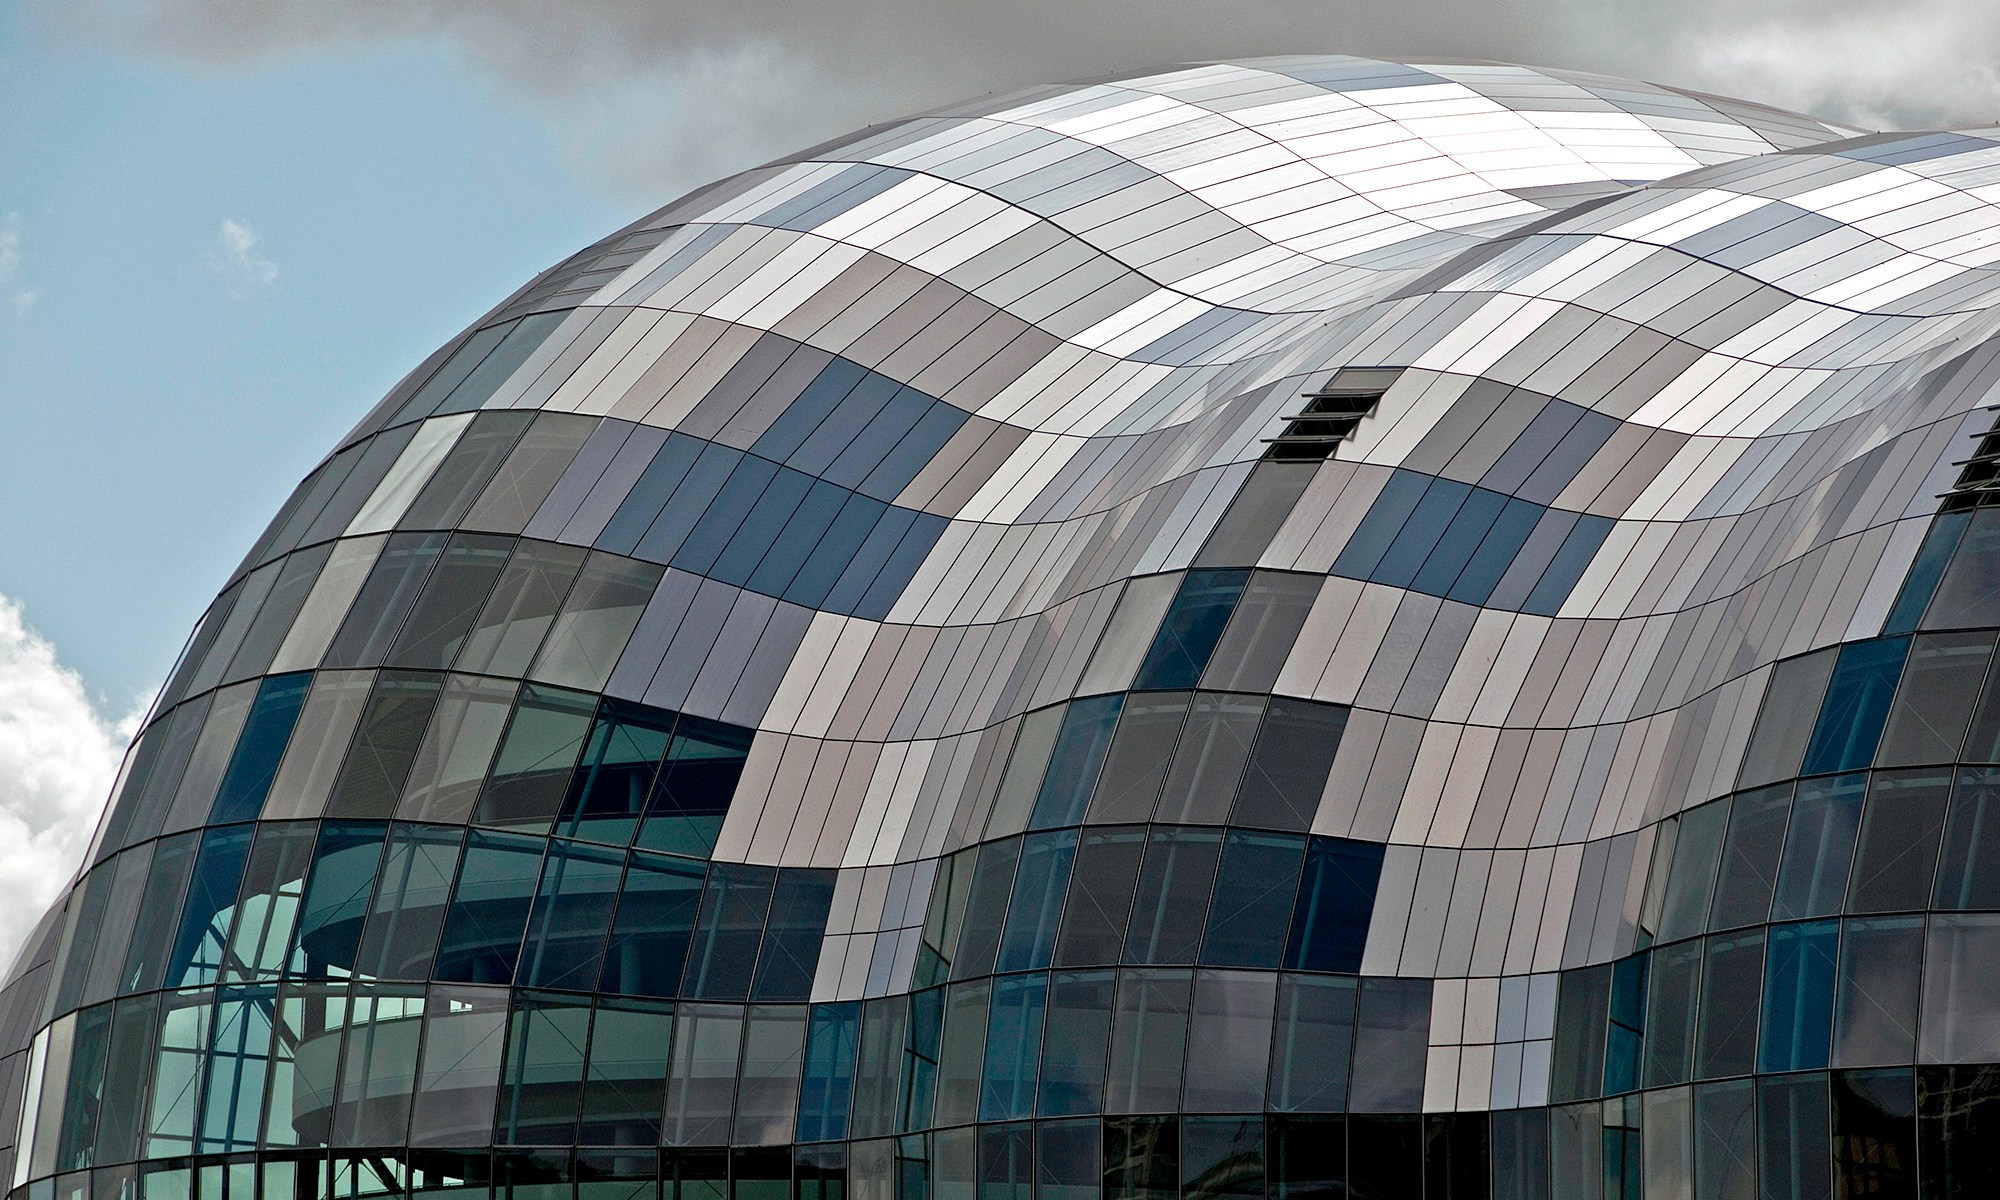 The Sage Gateshead Glass Pattern